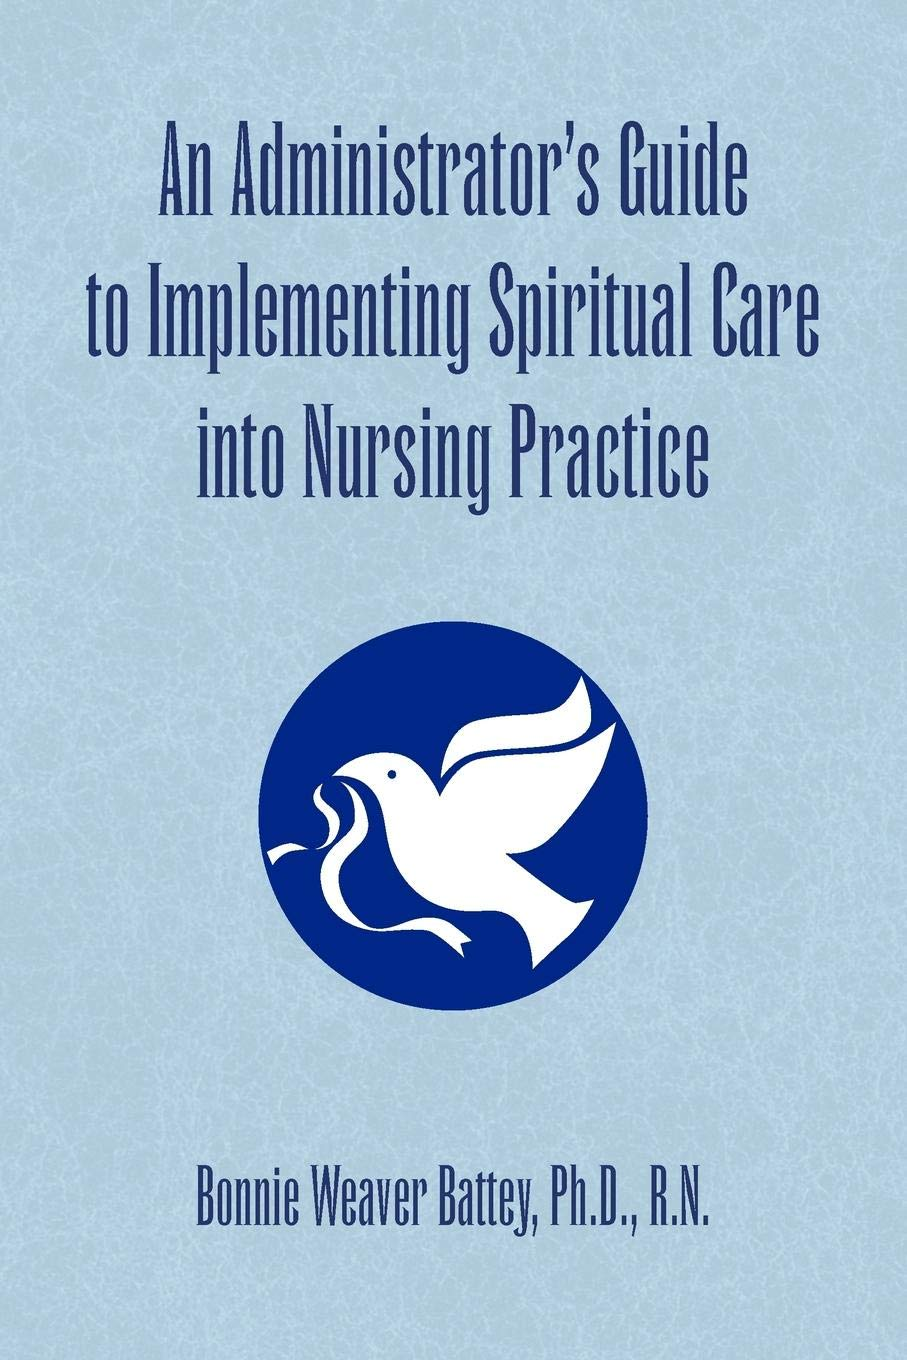 An Administrators Guide to Implementing Spiritual Care into Nursing Practice